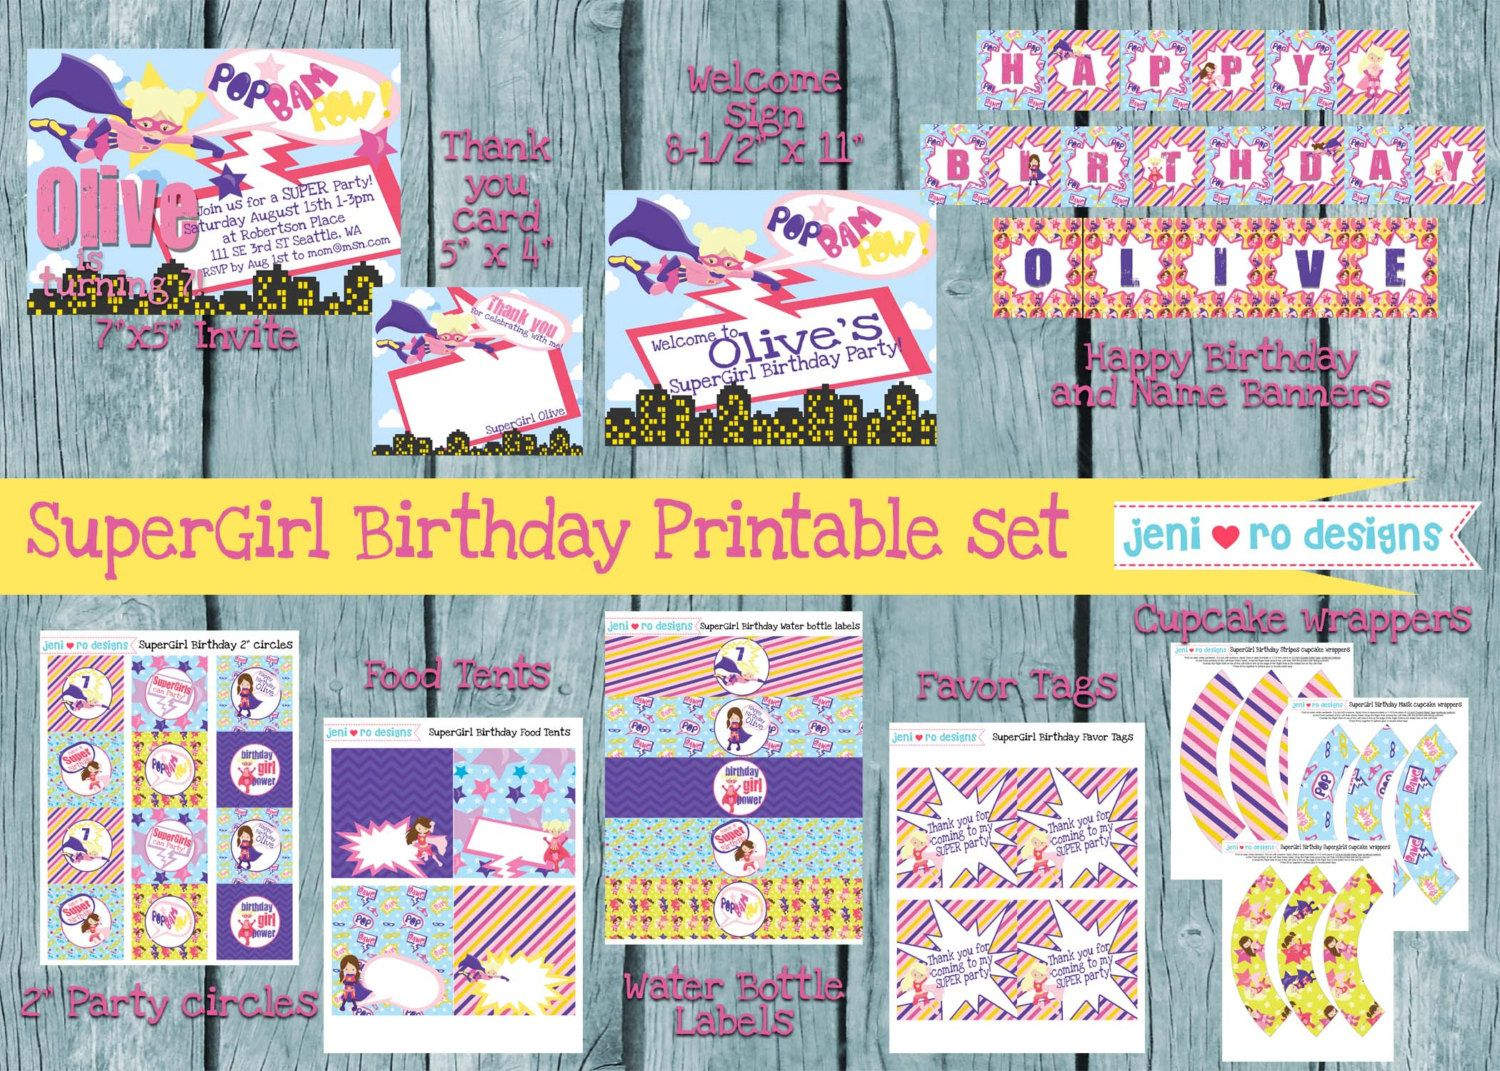 Supergirl Birthday Printable Set Invitation And Thank You Included Jenirodesigns Jpg 1500x1071 Happy Banner